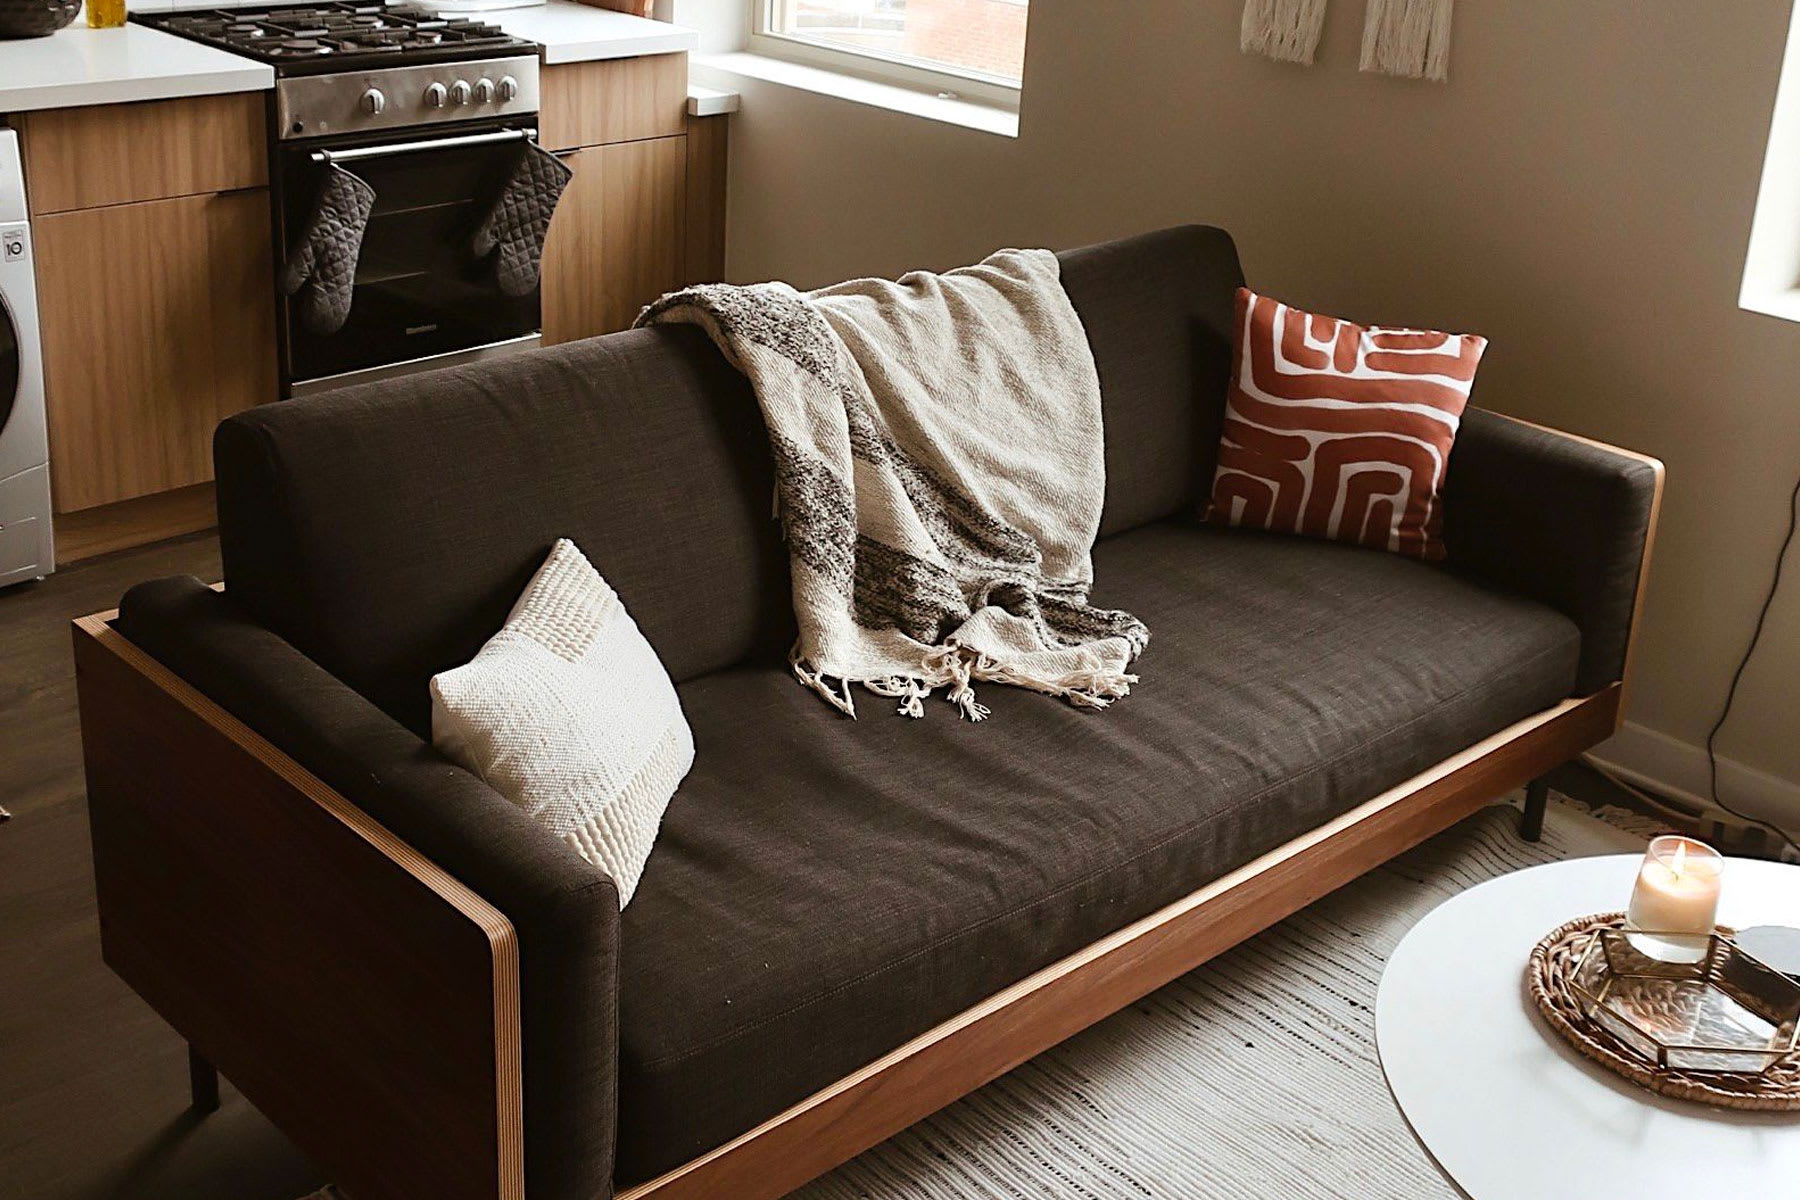 mid century modern sofa in apartment with coffee table